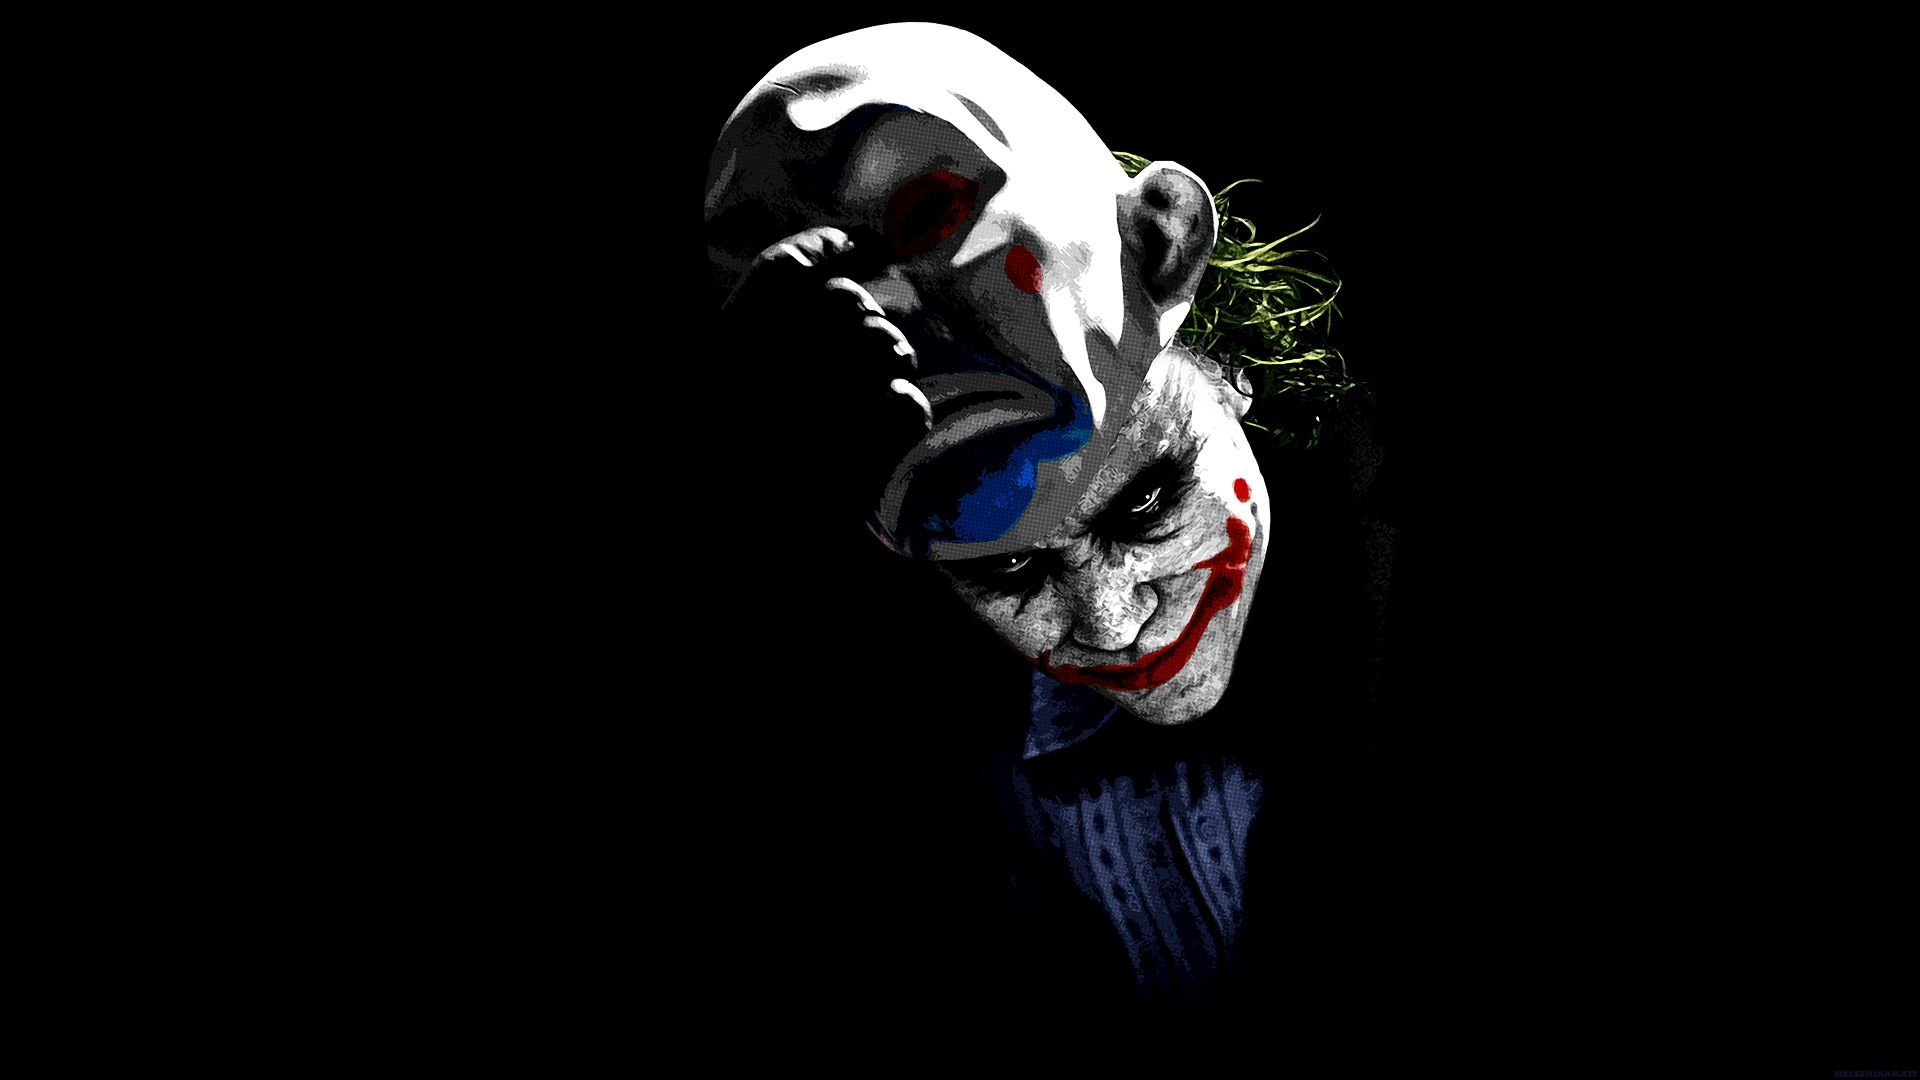 The Joker Wallpaper